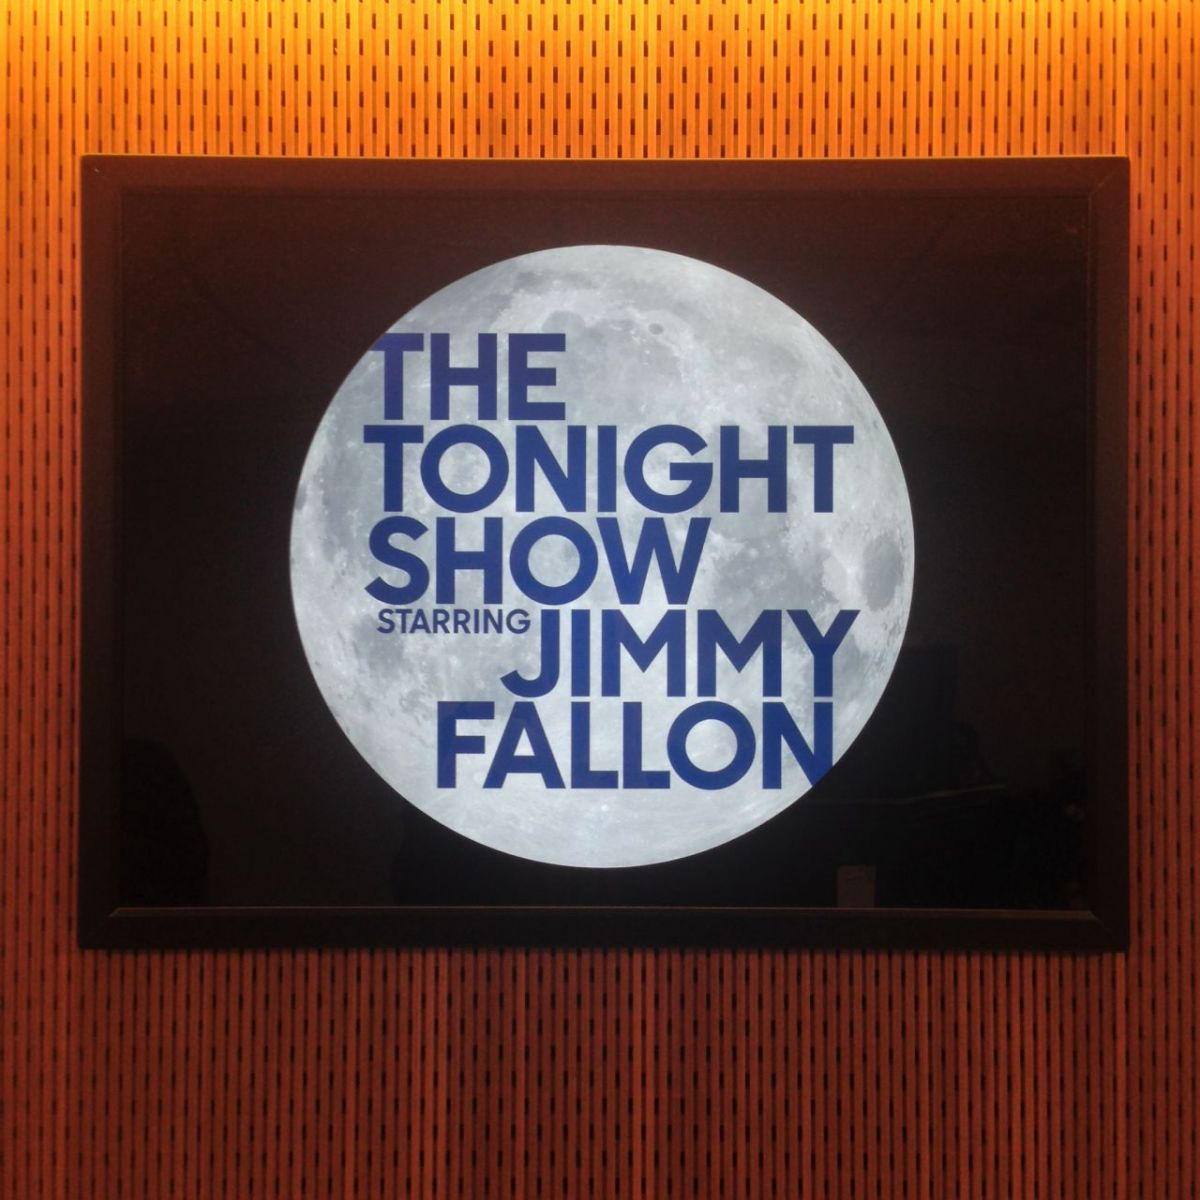 The Tonight Show with Jimmy Fallon.